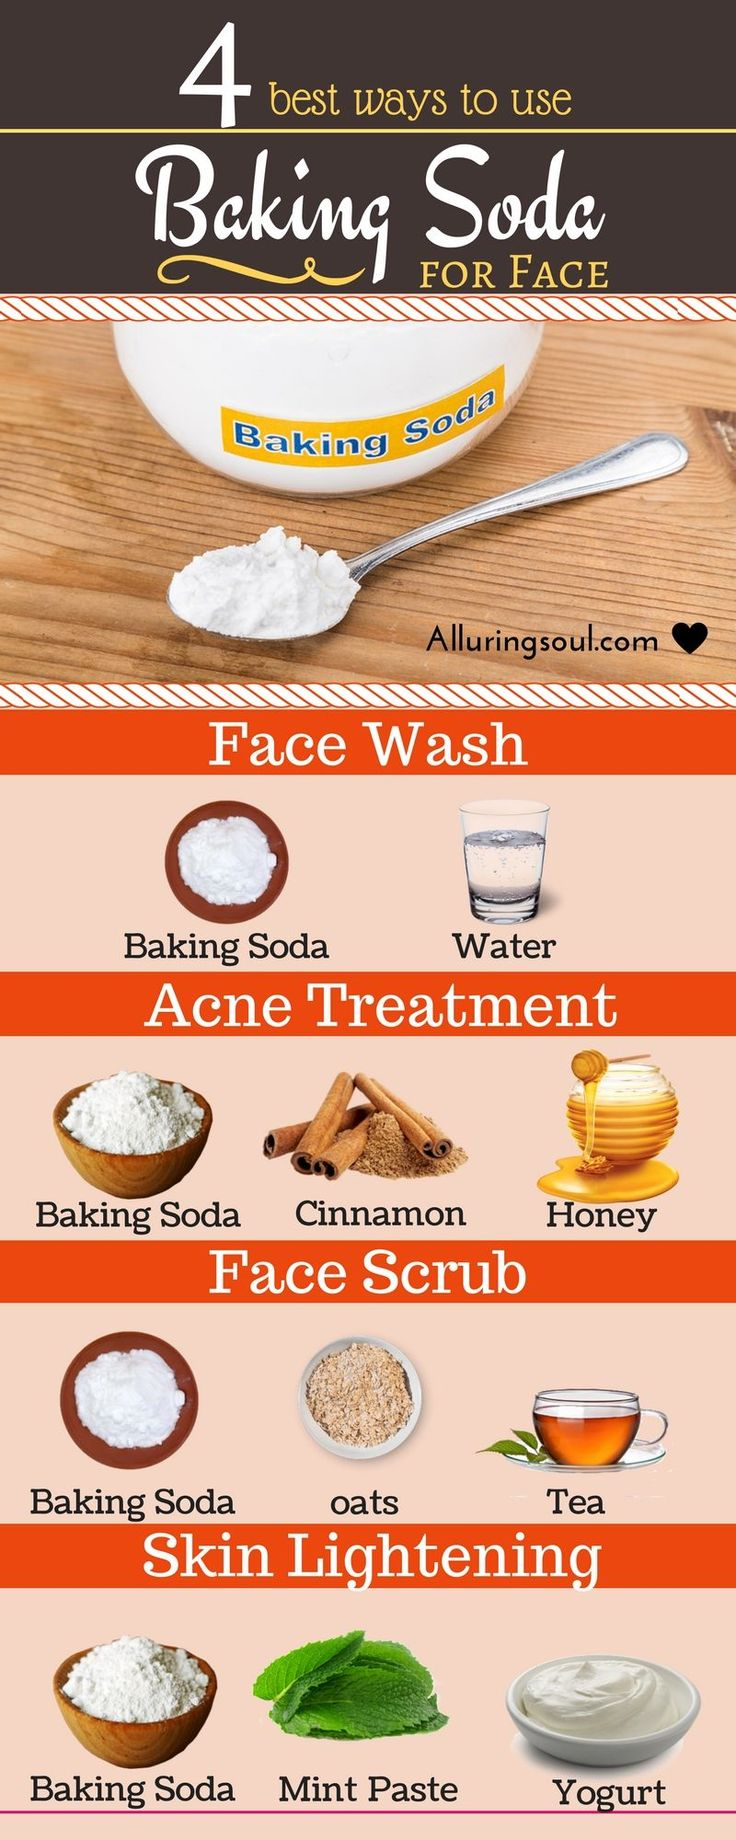 Baking Soda For Face And Hair